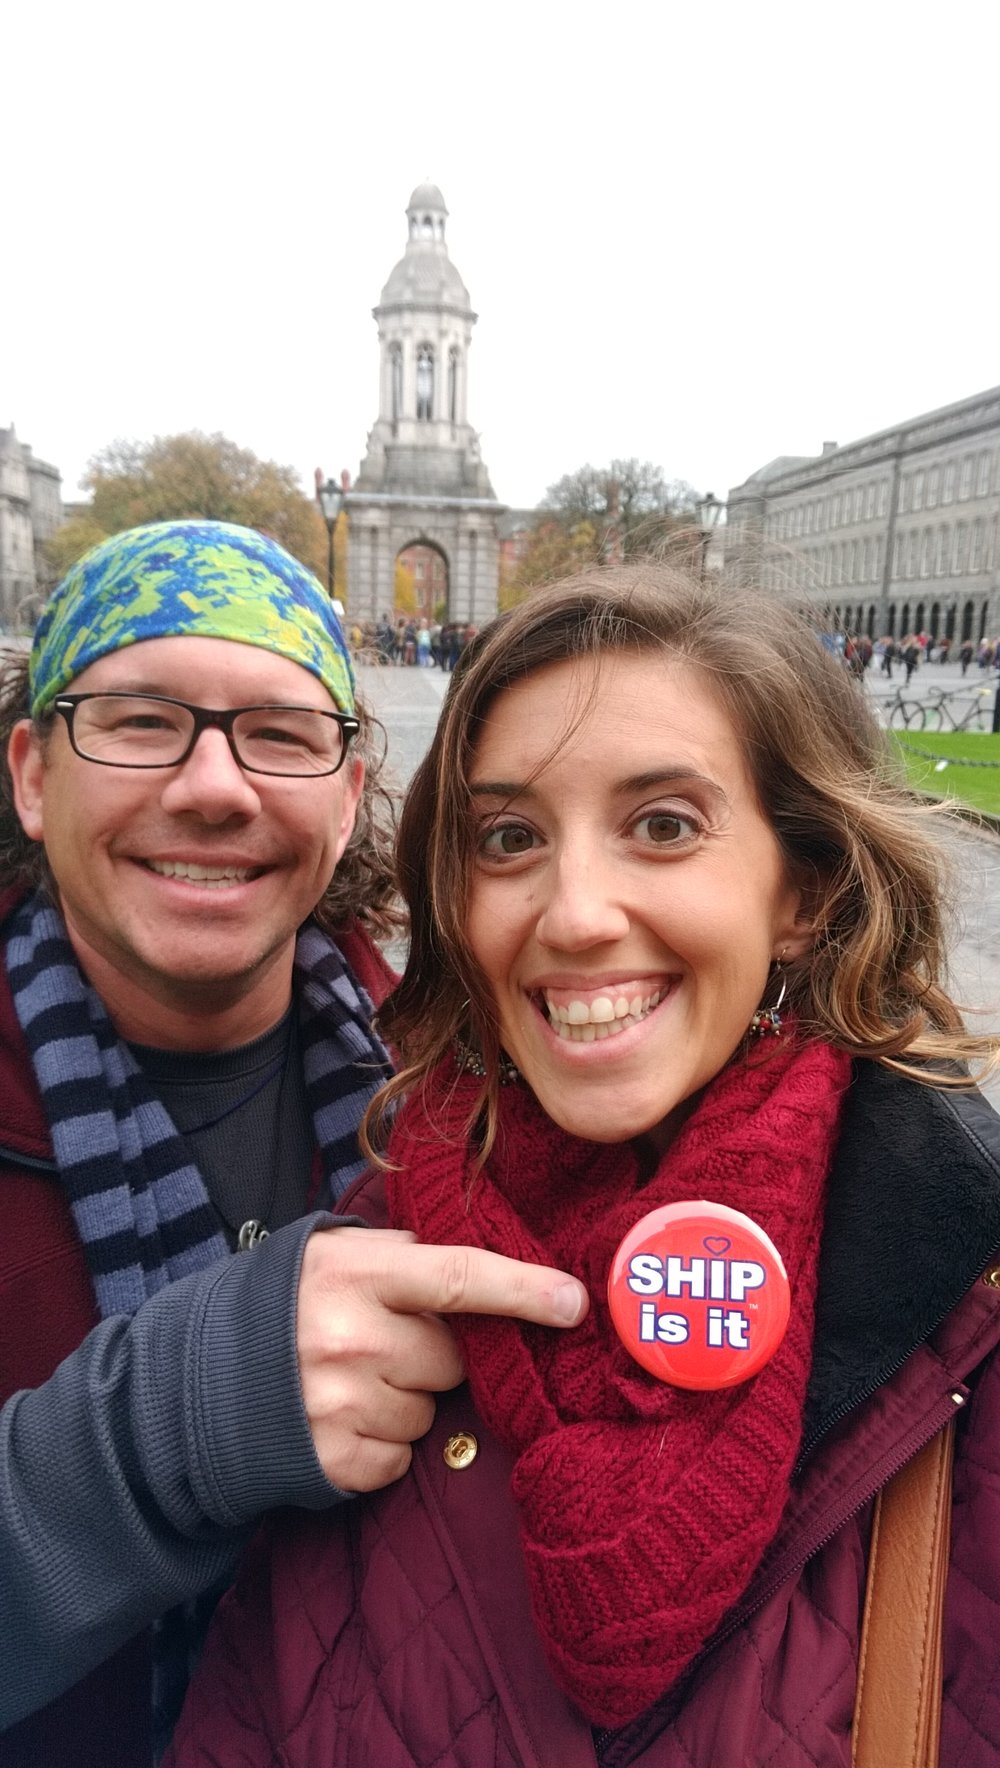 Representing Ship in Dublin, Dr. Matthew Shupp and his wife, Sarah, assistant director of SU's Career and Community Engagement Center, visited Parliament Square at Trinity College, where Sarah spoke with the college's Career Services Center to compare their services to Ship.